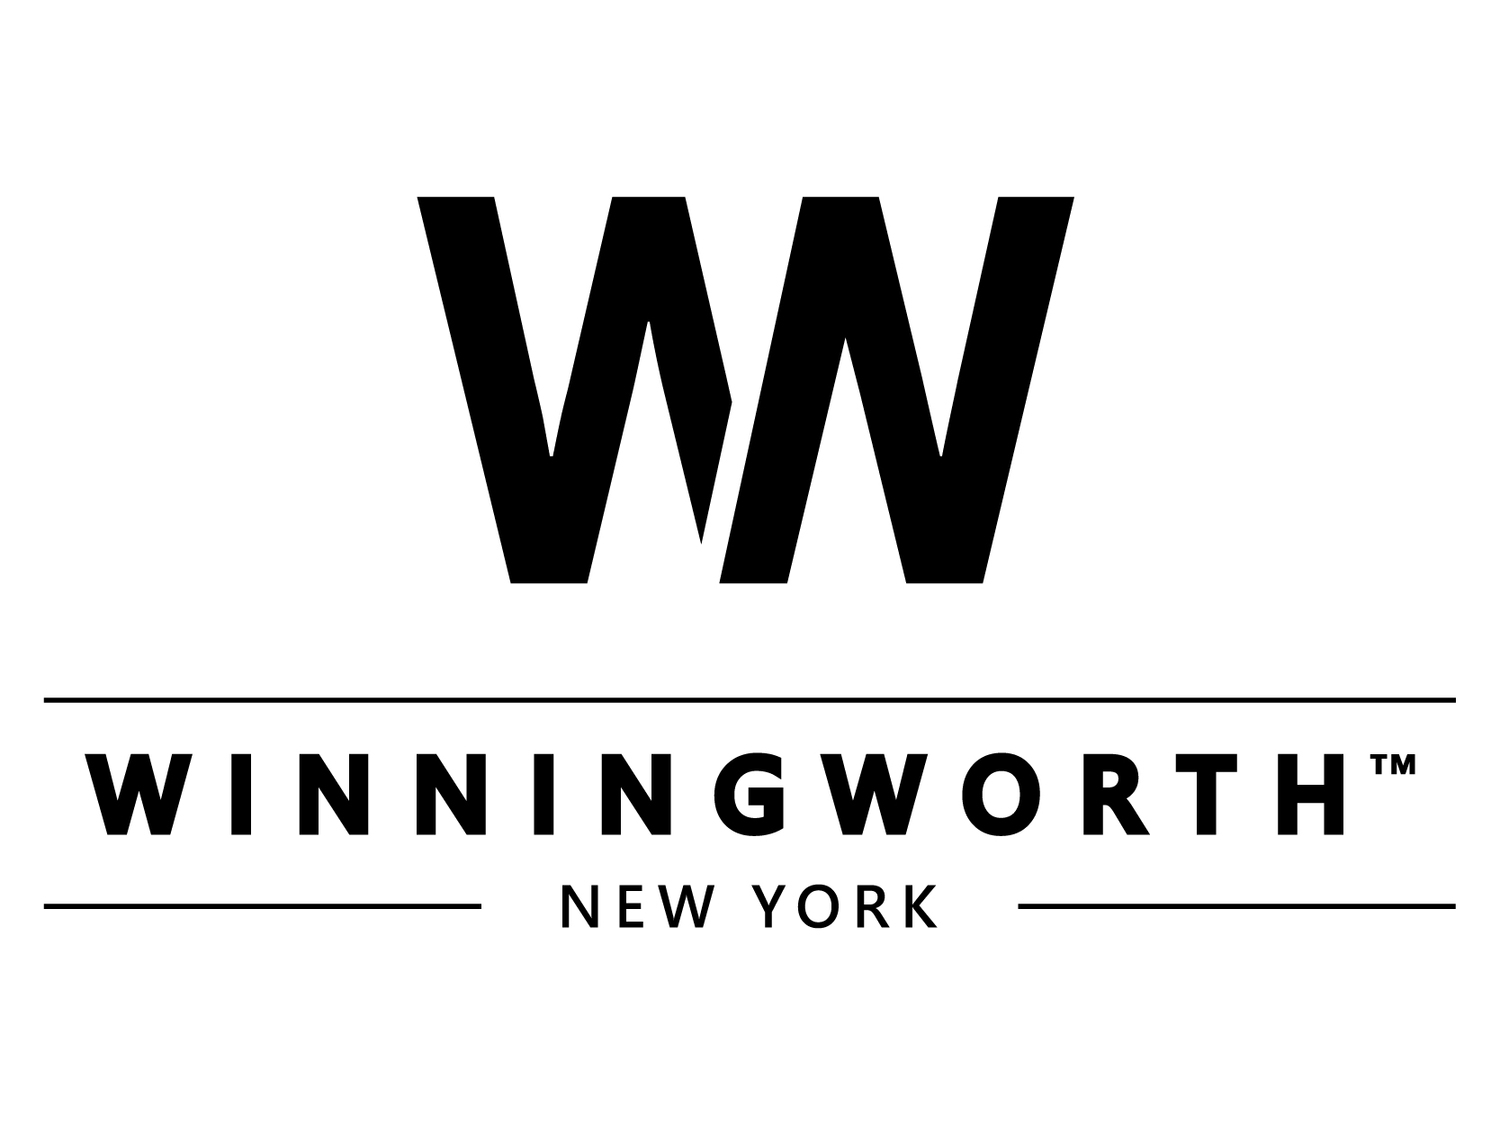 Winning Worth